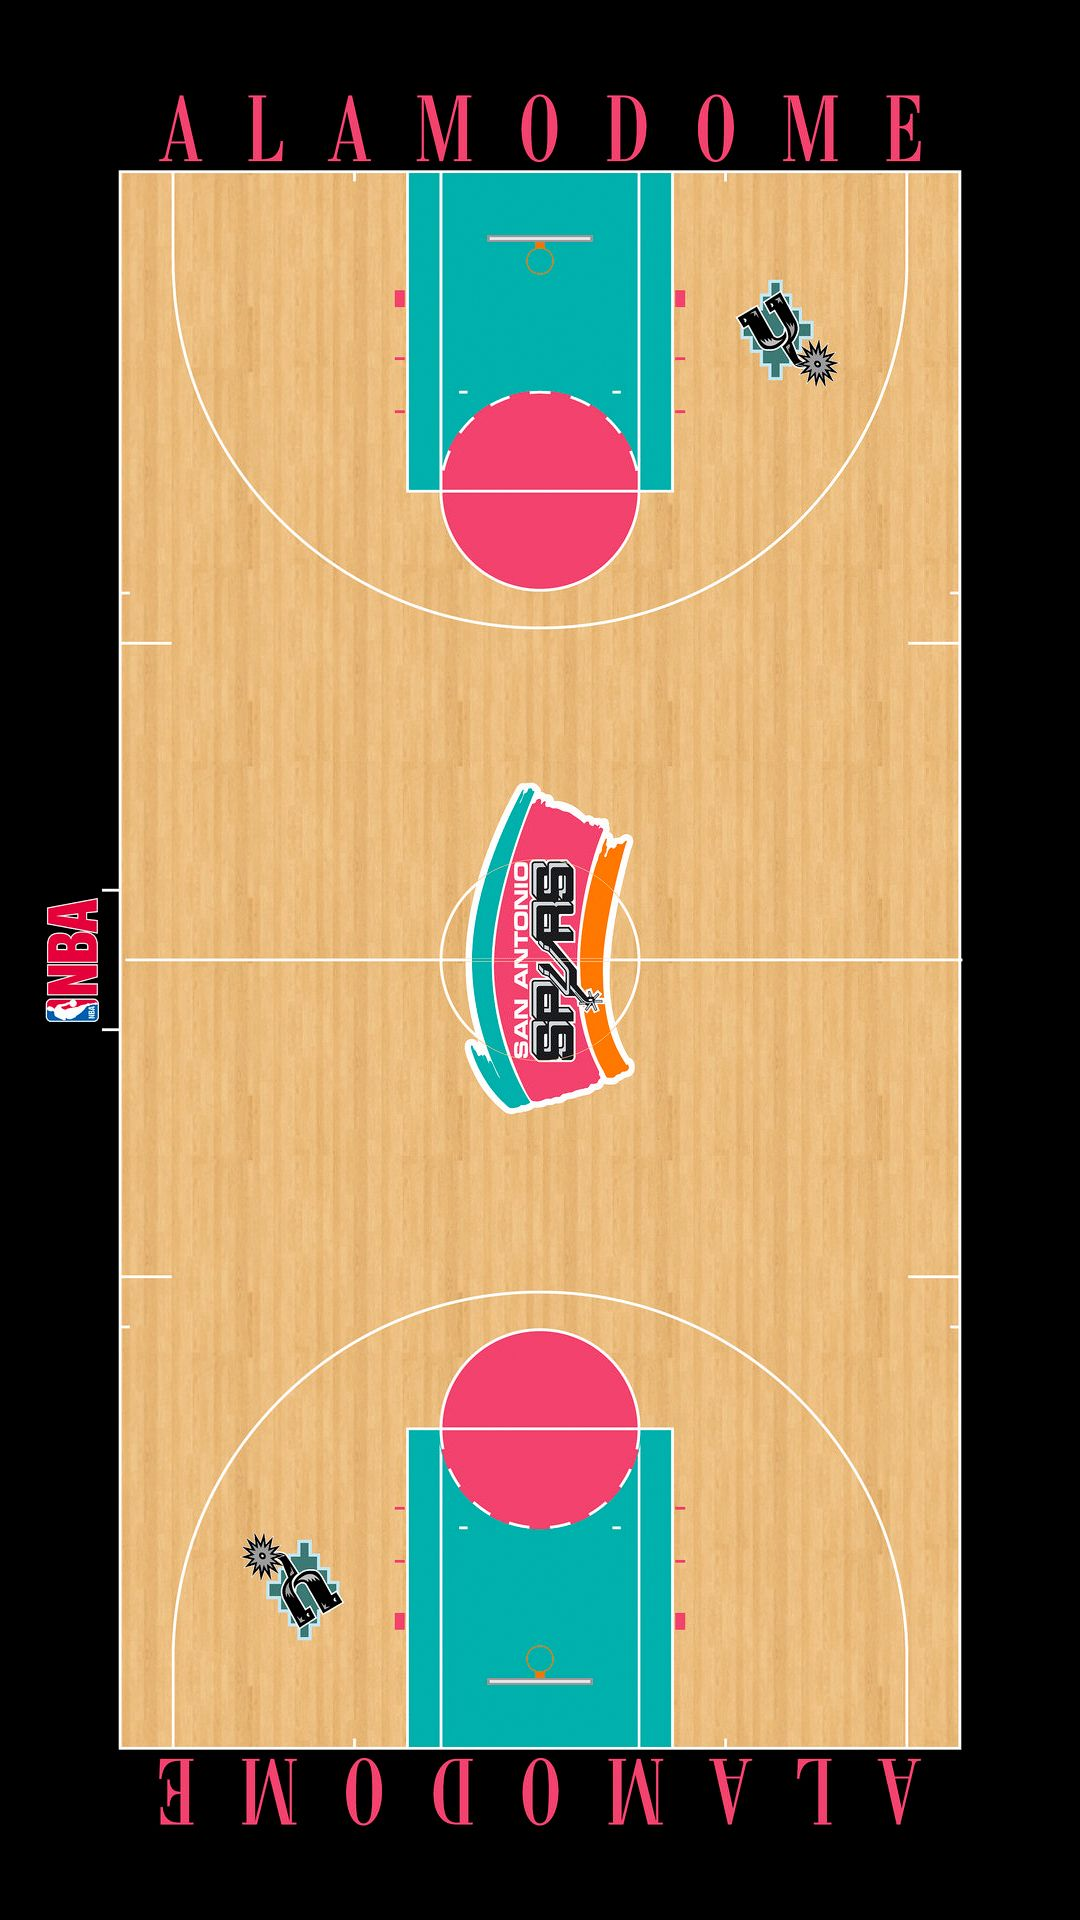 Basketball Wallpaper High Quality Resolution » Hupages